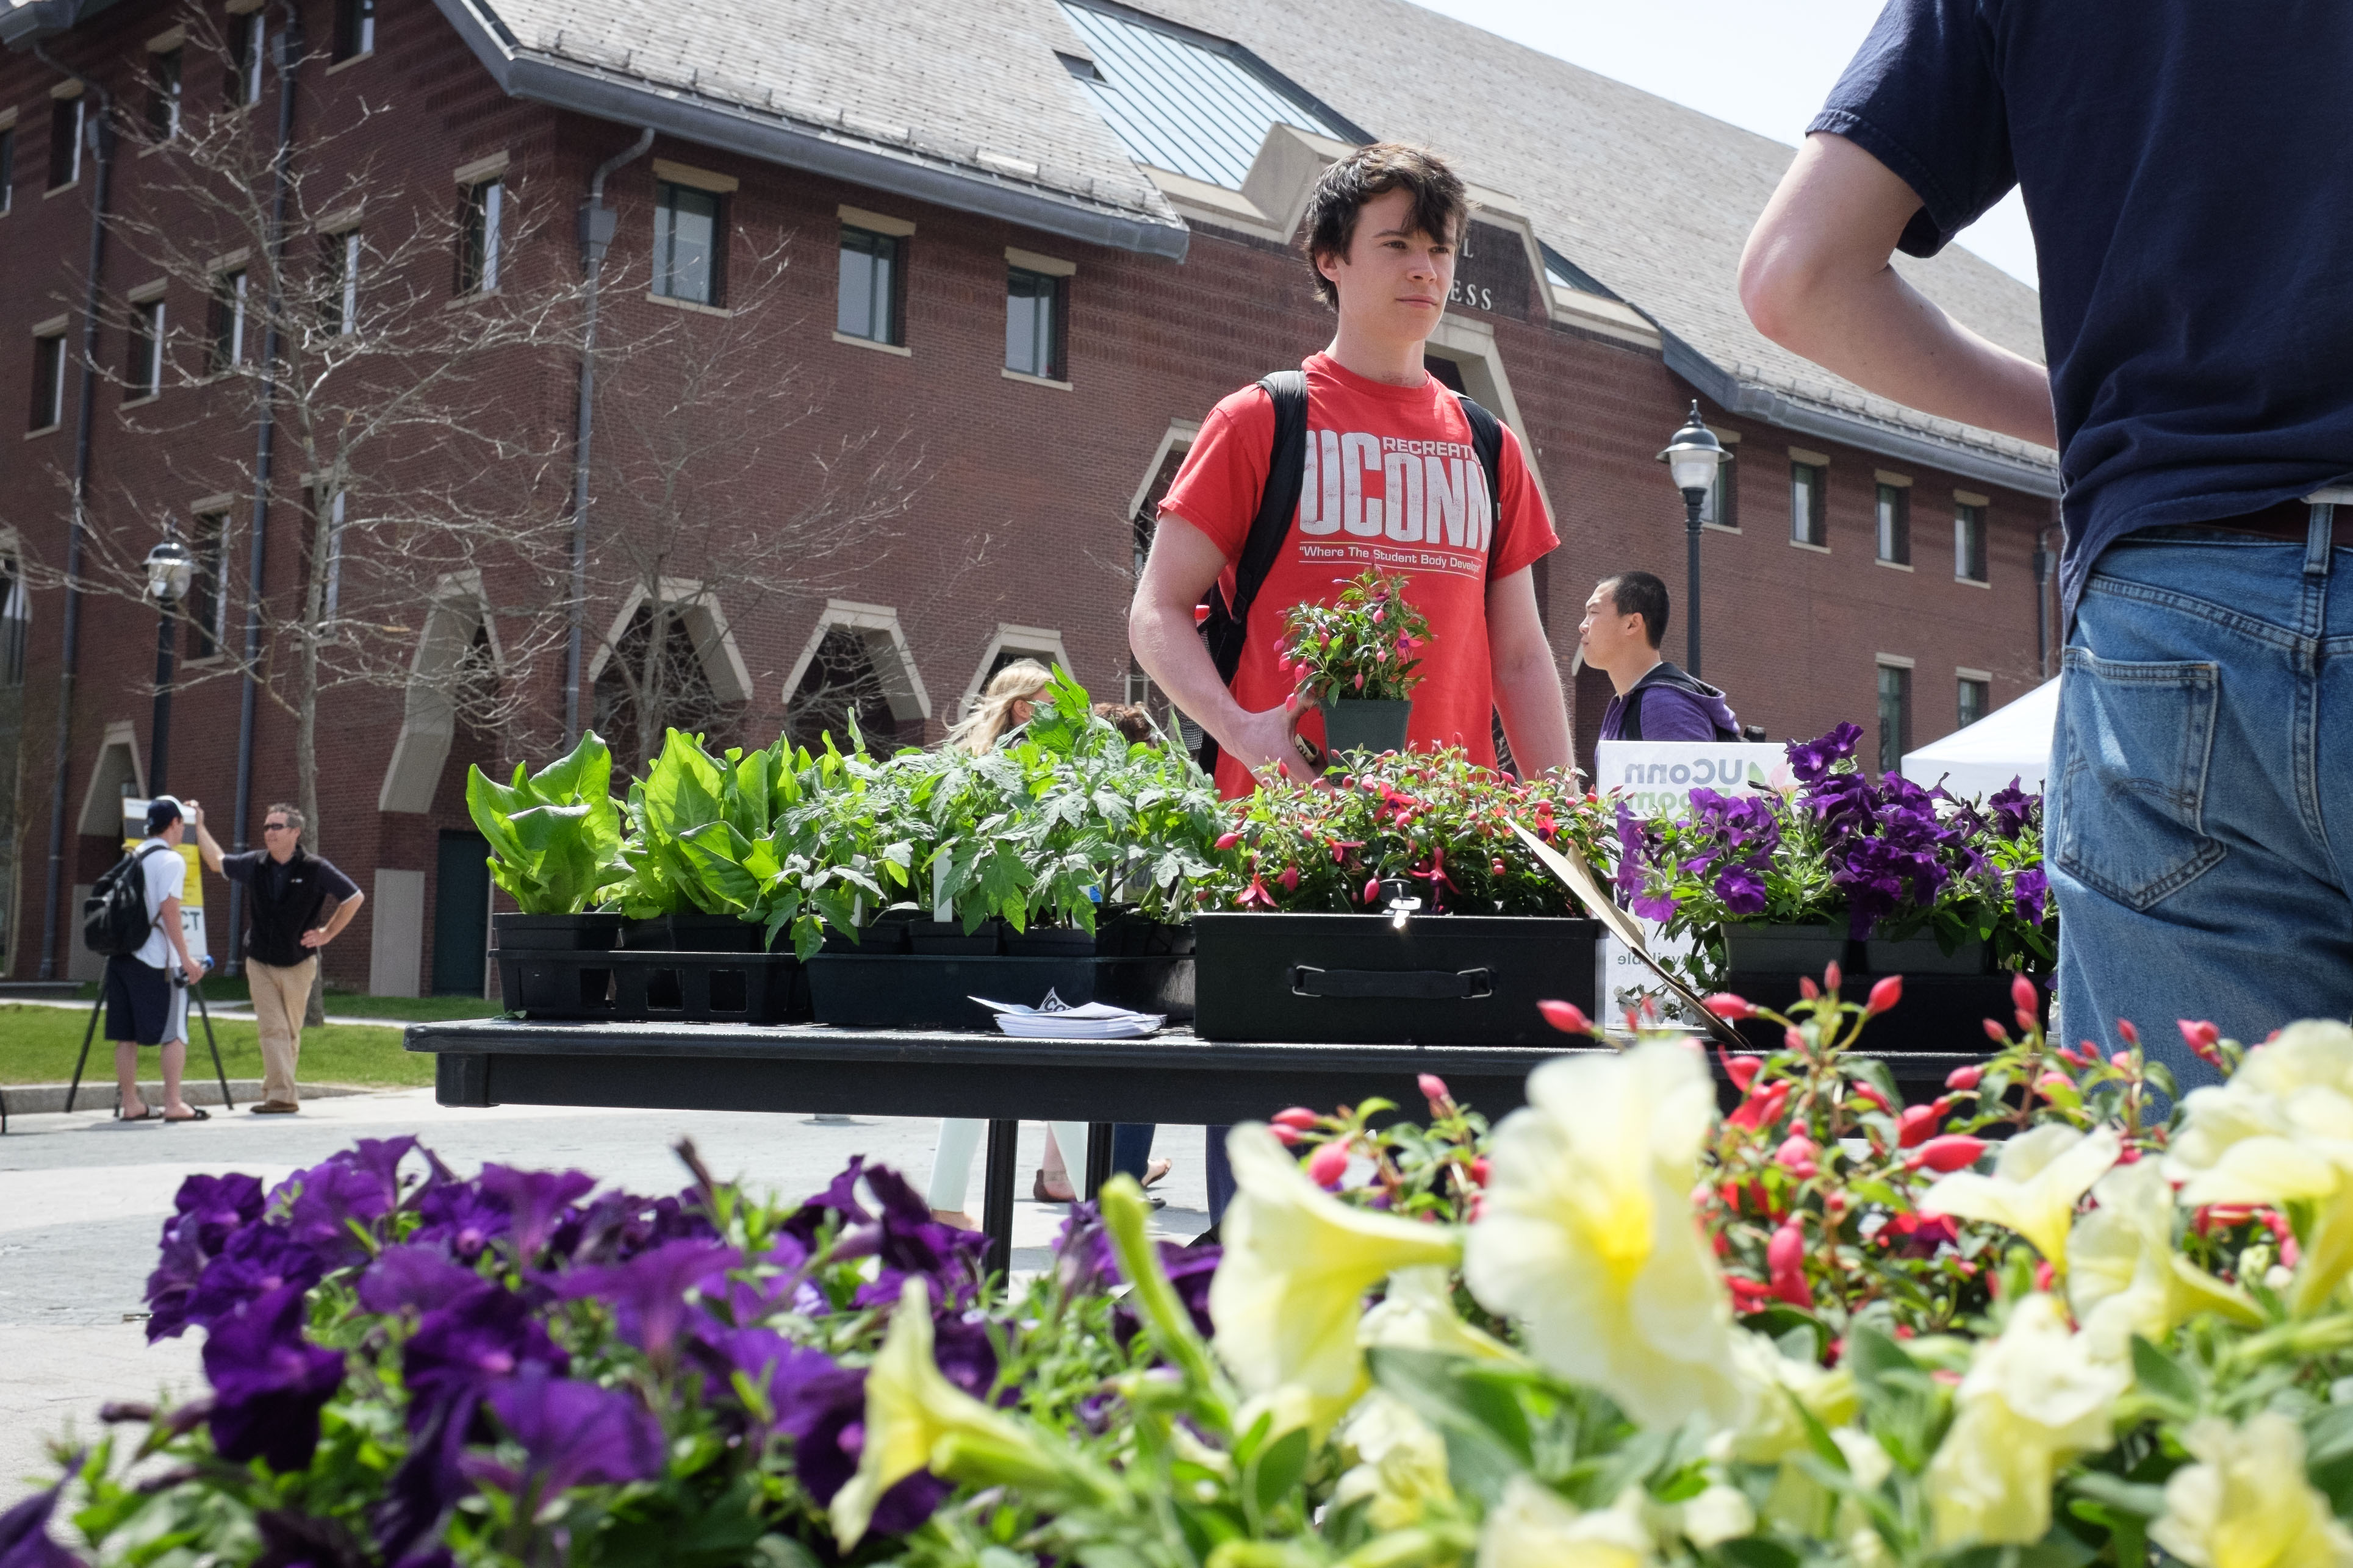 The annual Earth Week Spring Fling on Fairfield Way is one of the many University-wide efforts to incorporate sustainability into all facets of campus life. (Peter Morenus/UConn Photo)